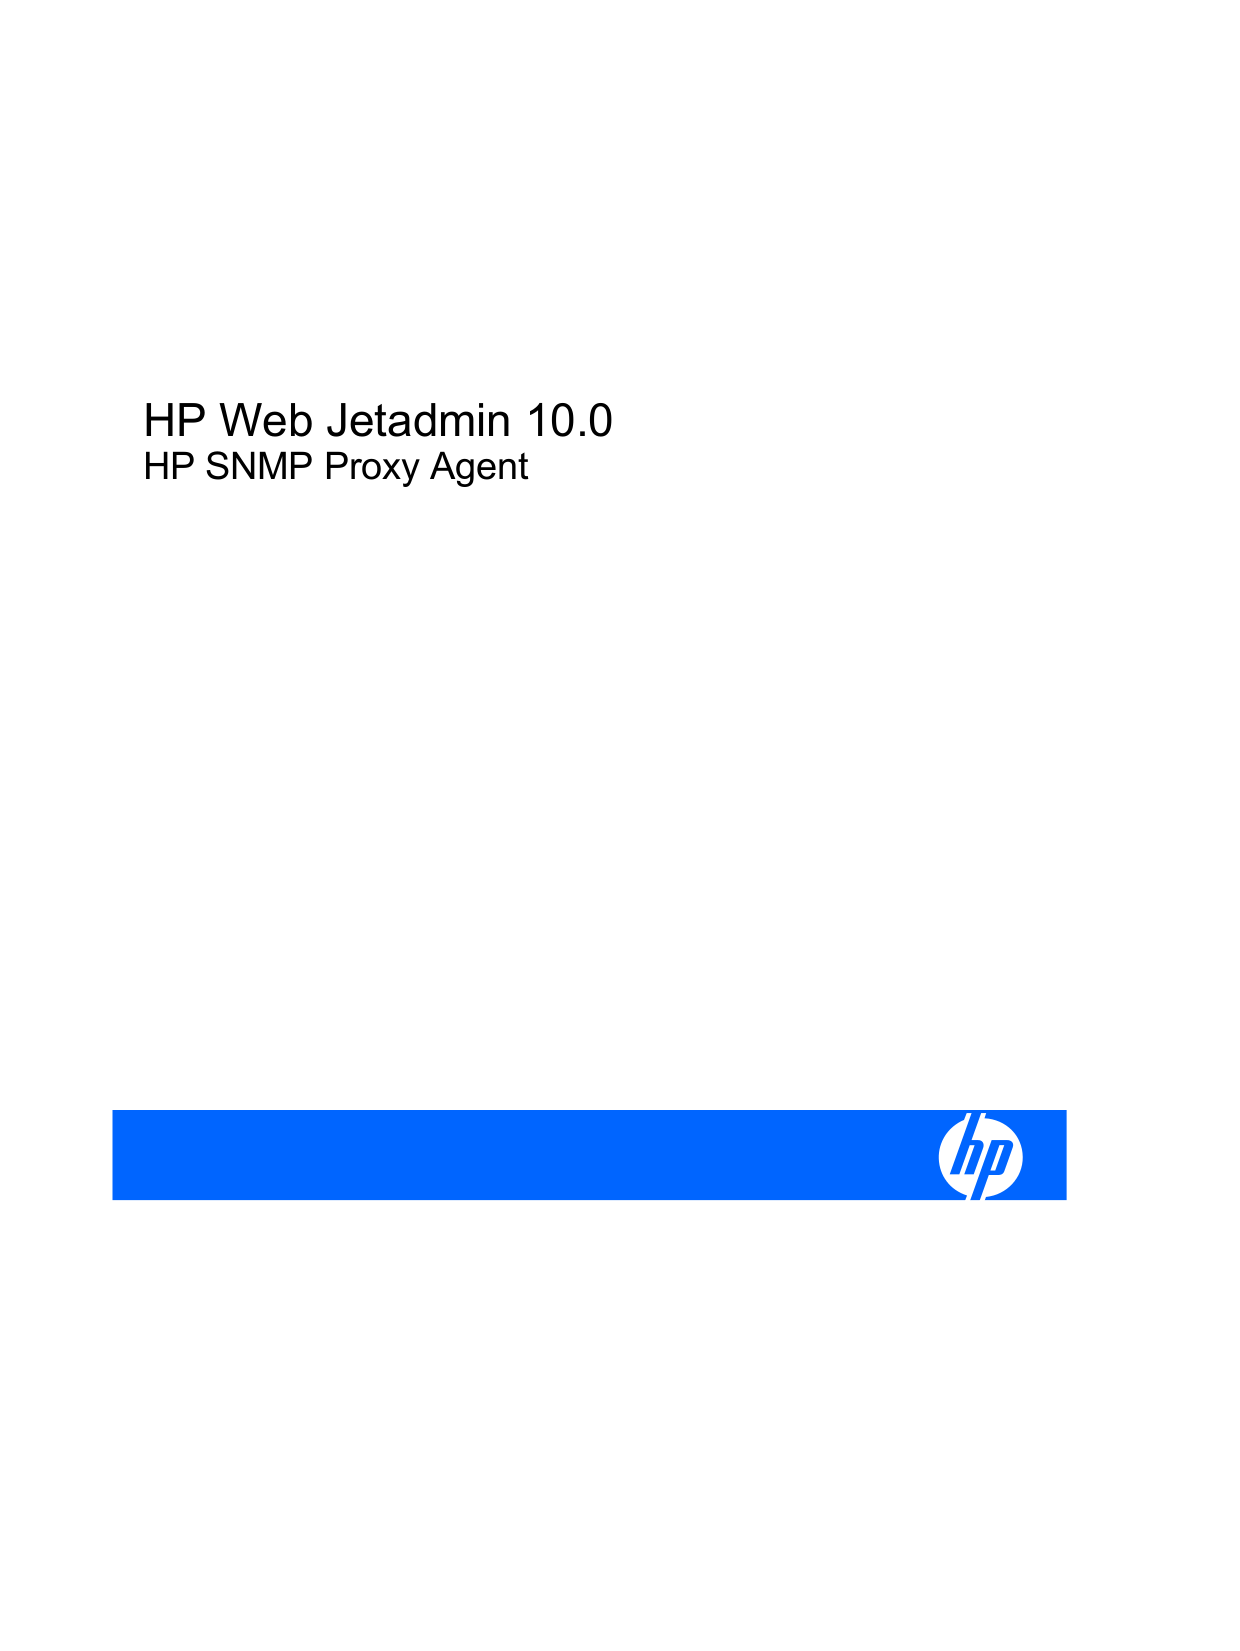 hp photosmart 5520 manual pdf